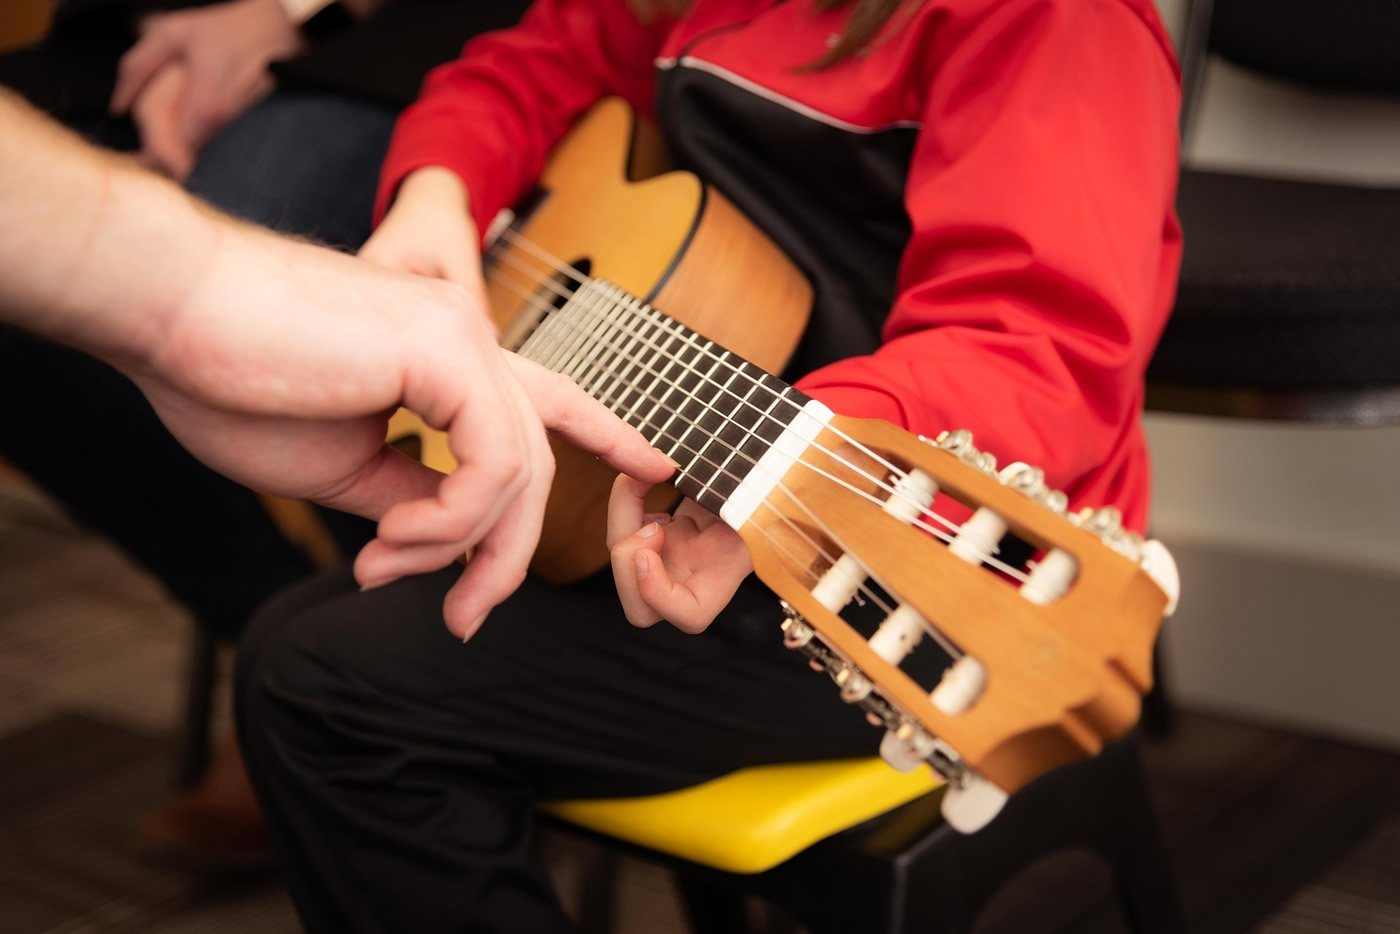 This shows a child learning guitar